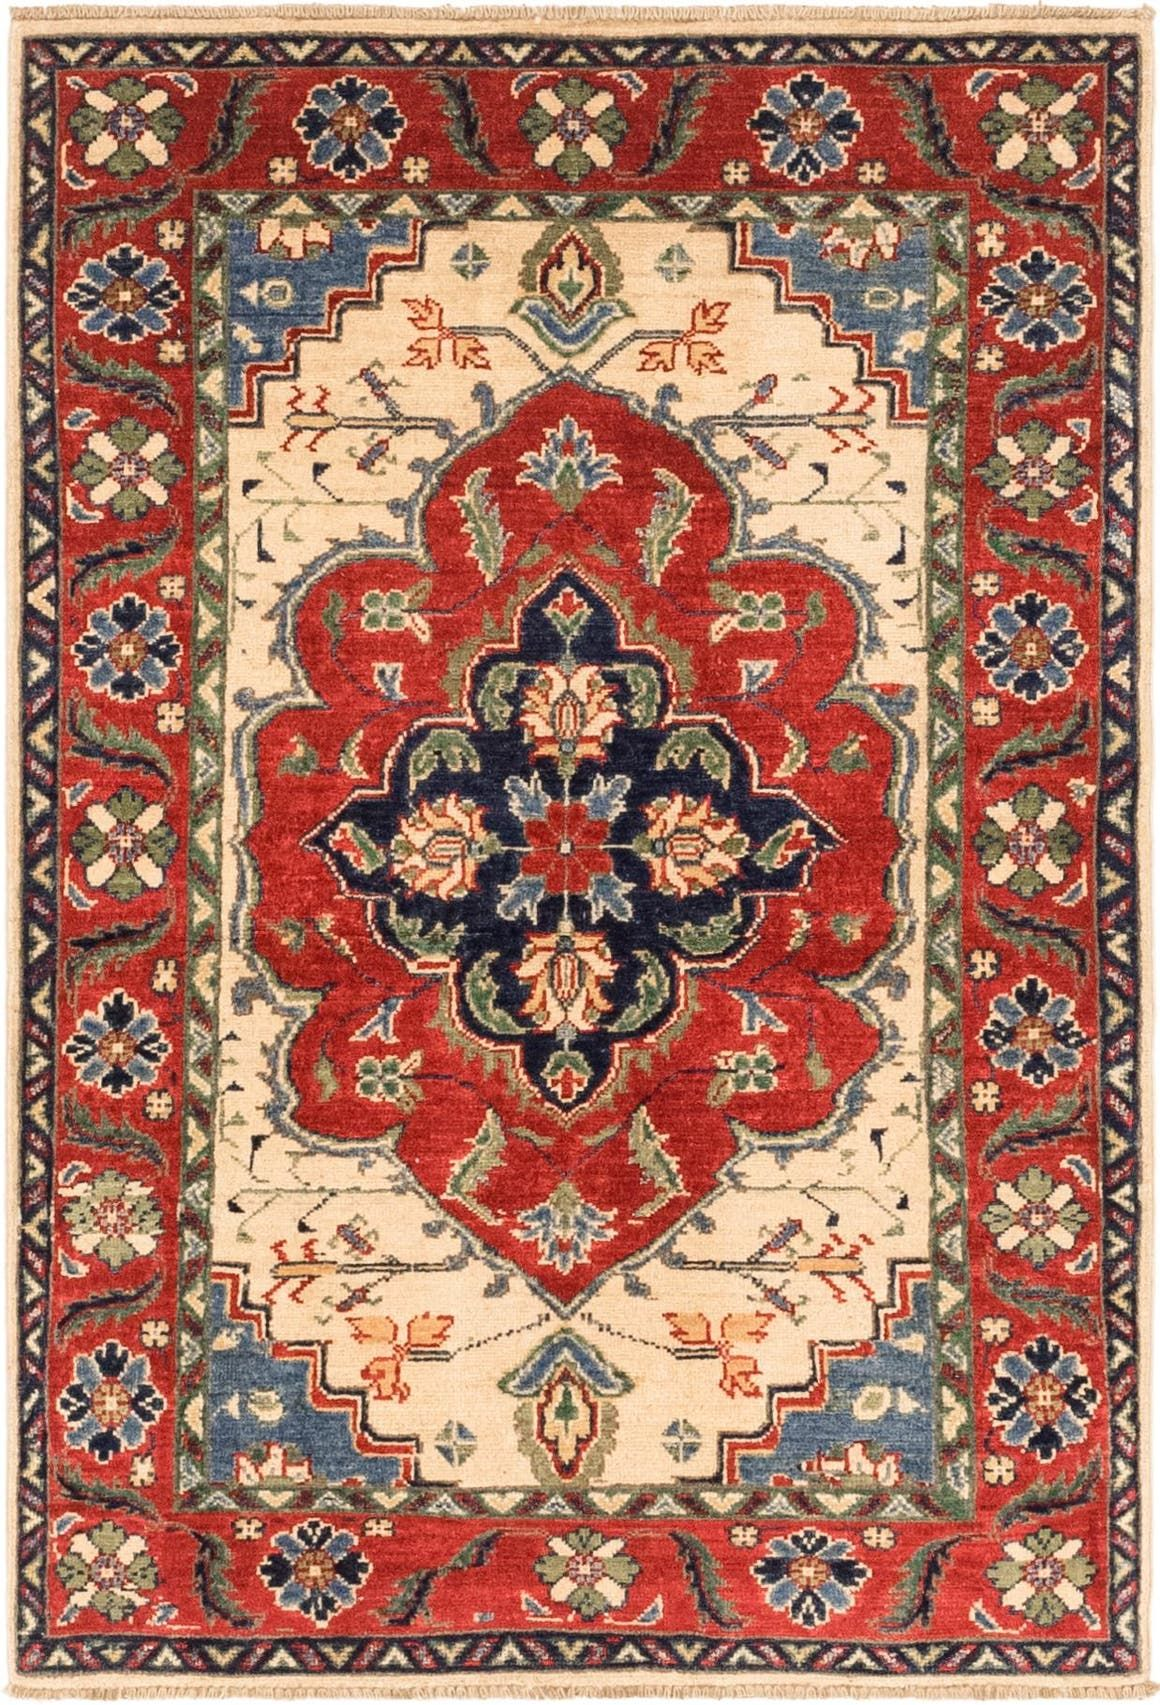 Kazak Red 3x5 Accent Rug In 2020 Rugs Rugs On Carpet Red Rugs